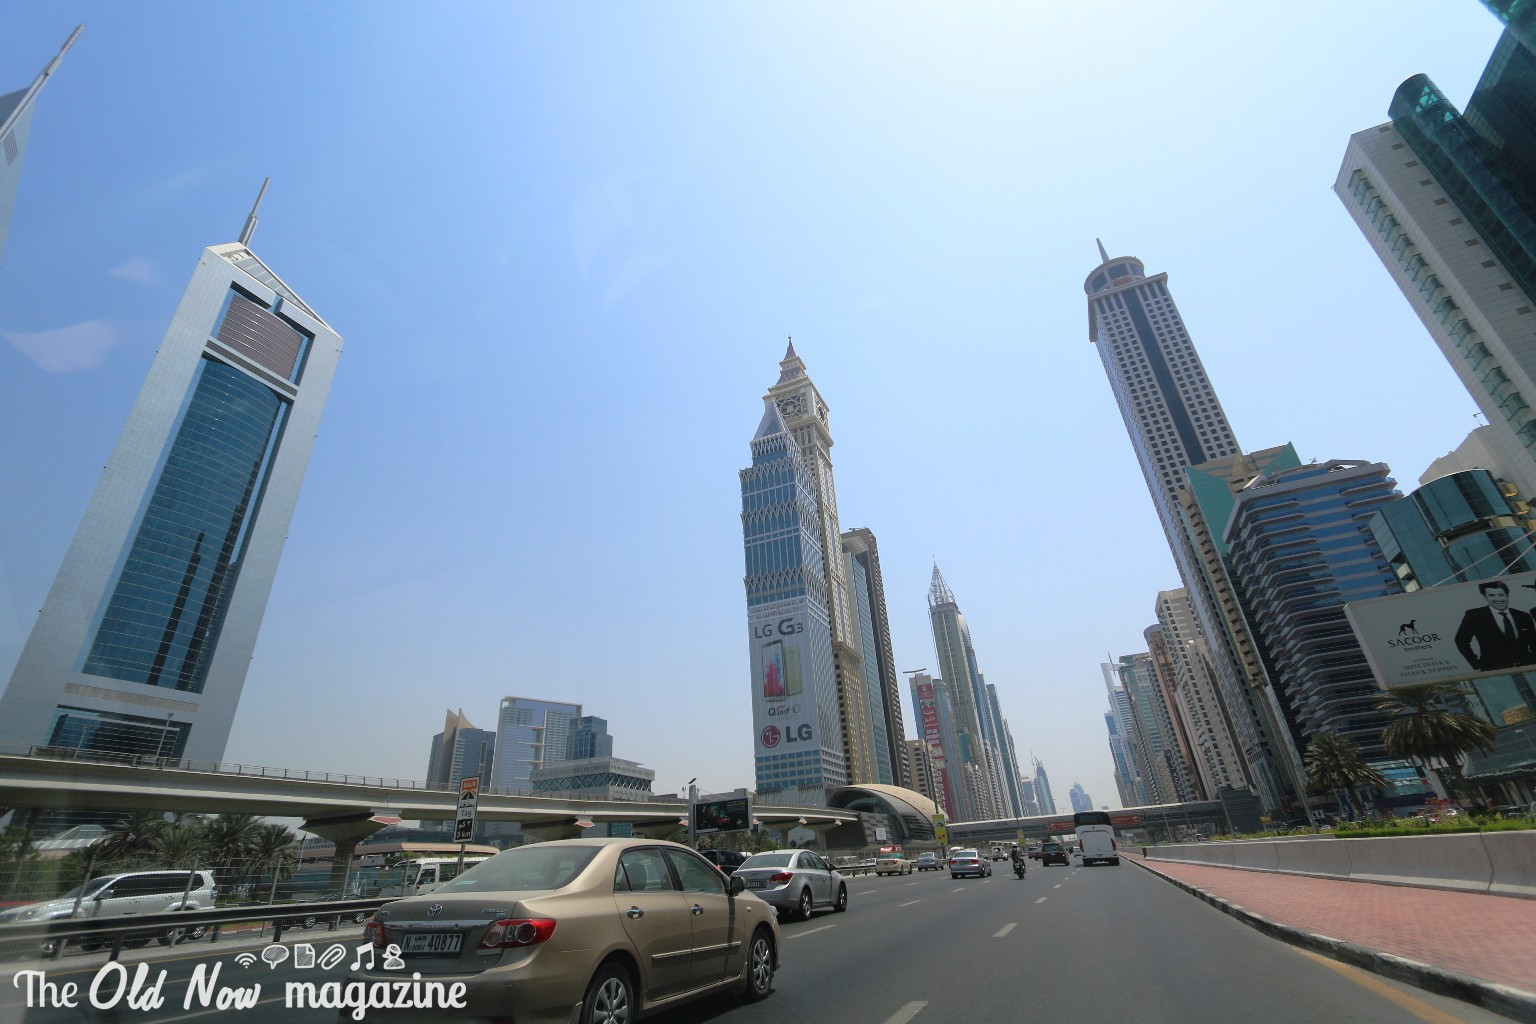 DUBAY DAY1 THEOLDNOW (10)